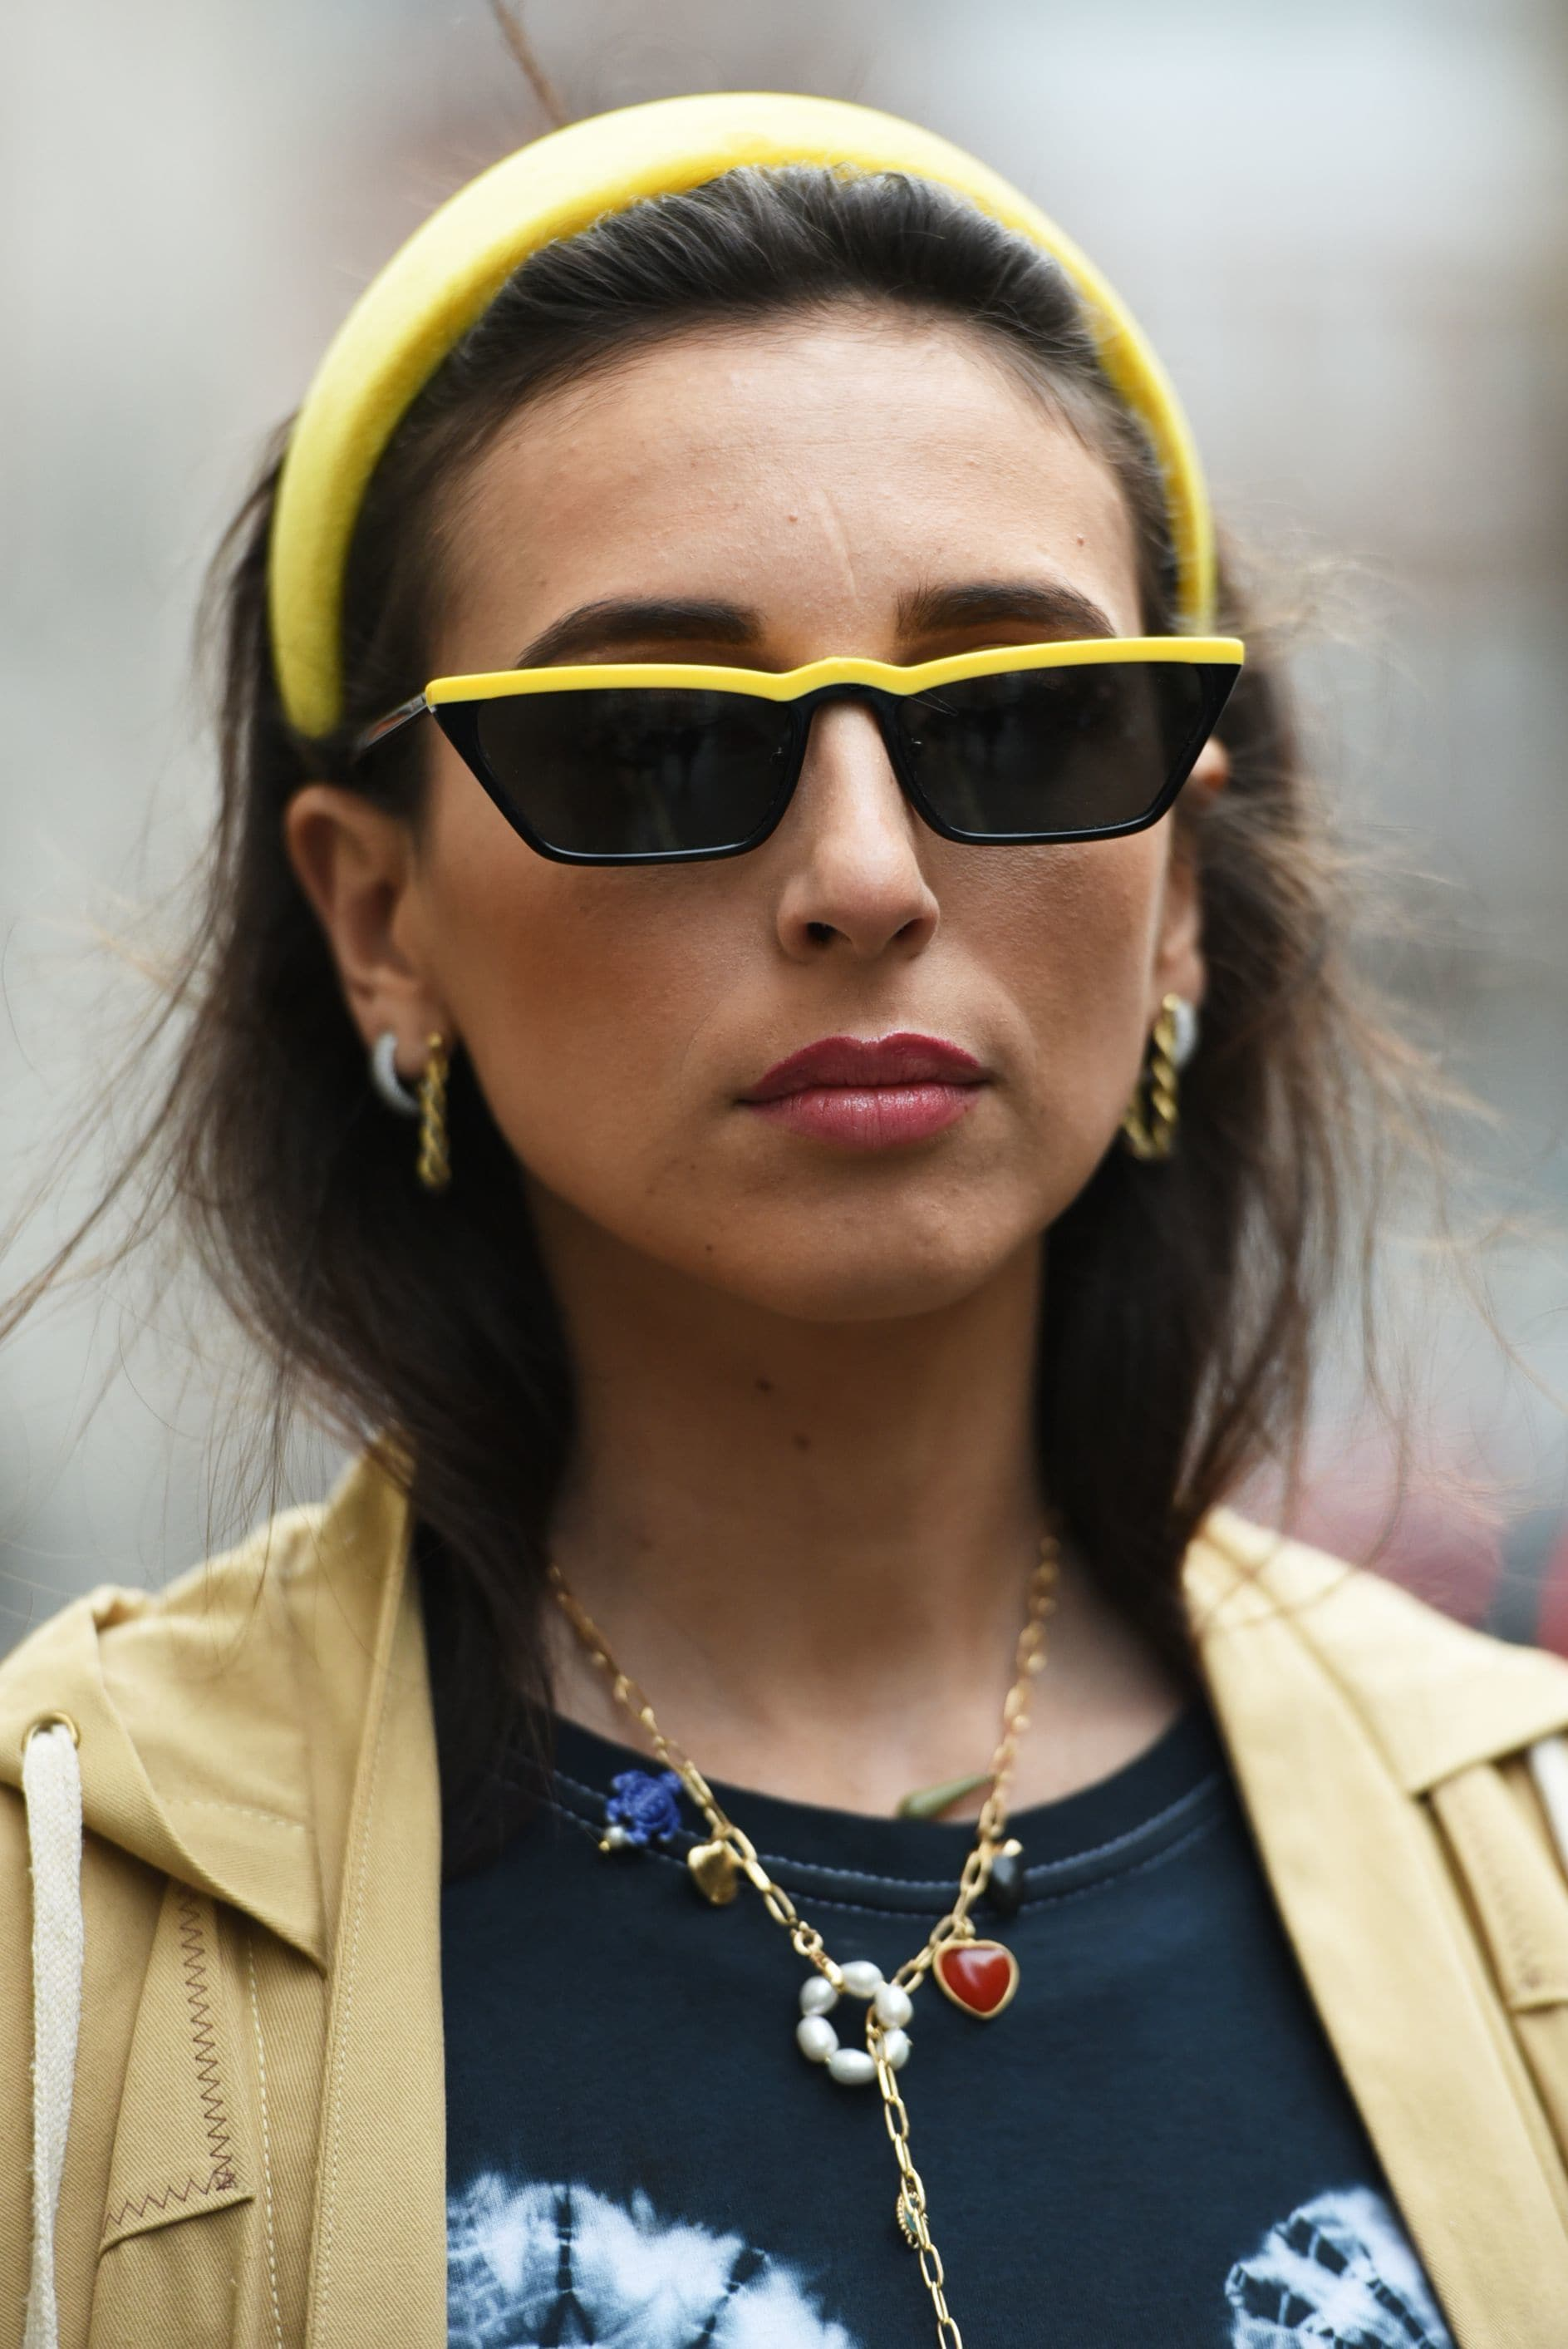 LFW hair street style: Woman with brown hair tucked into a beige jacket wearing a yellow headband and black and yellow sunglasses.